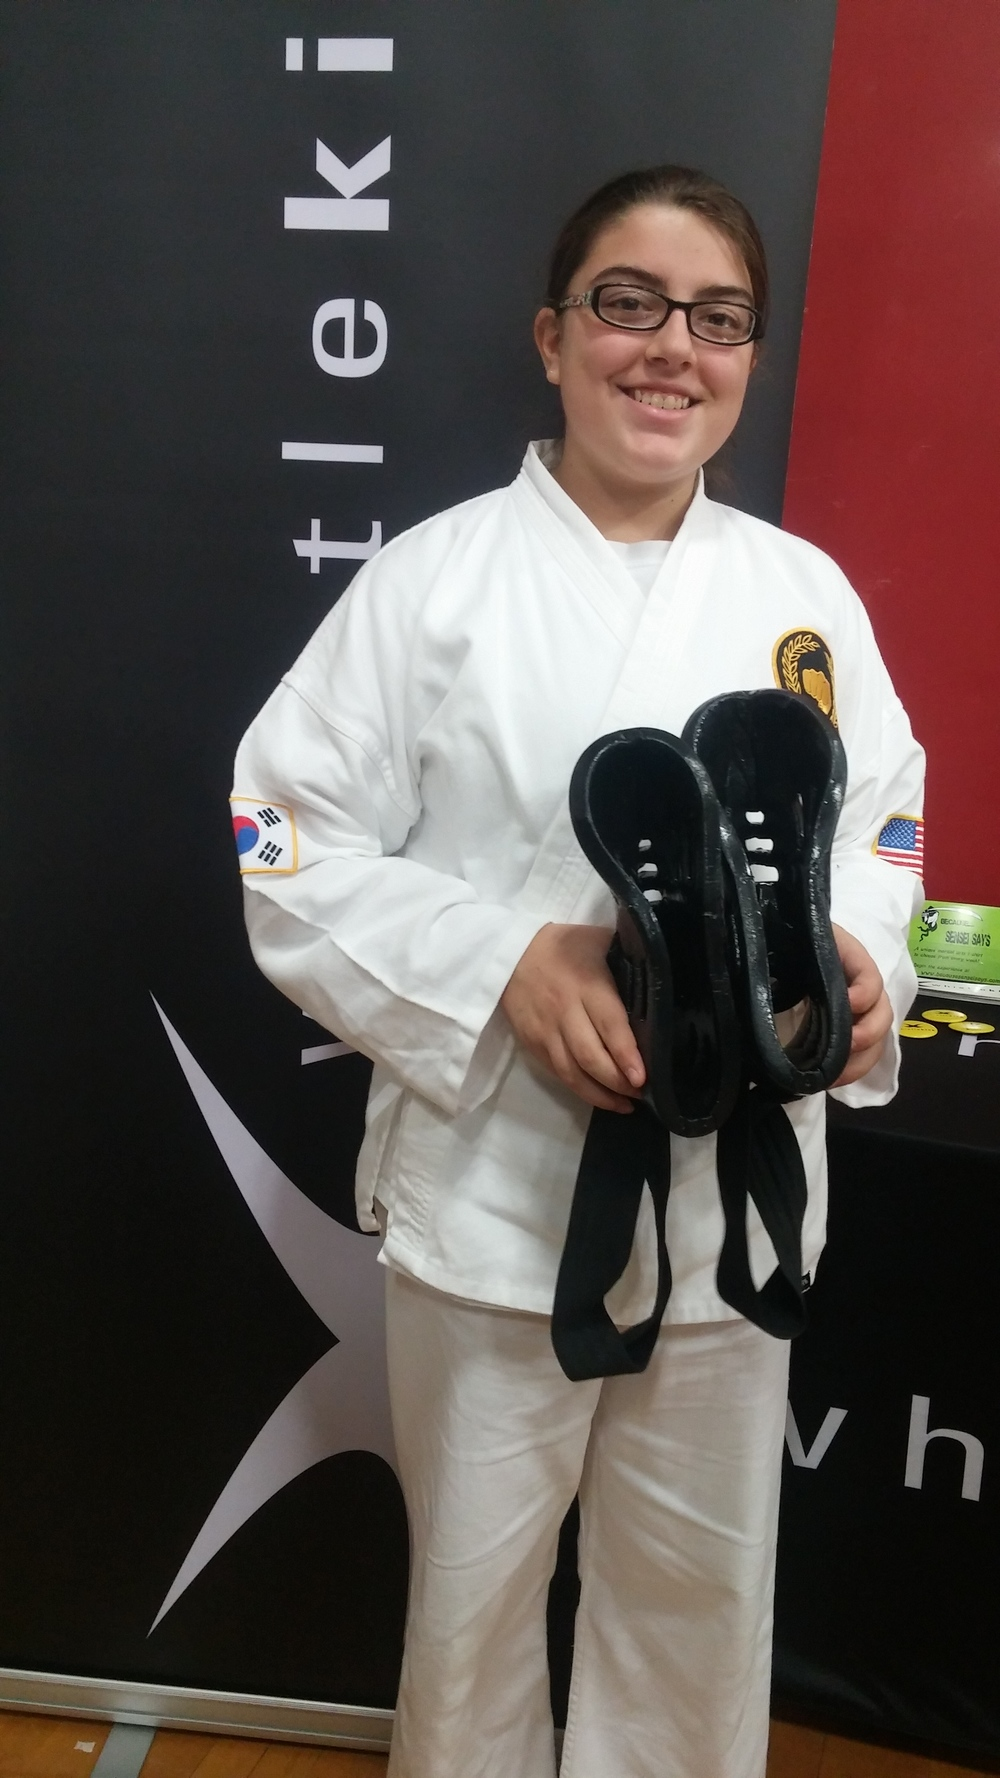 Alyssa Chandler, Green Belt, Age 13, with her 18 month old whistlekick Sparring Boots - and they look brand new!